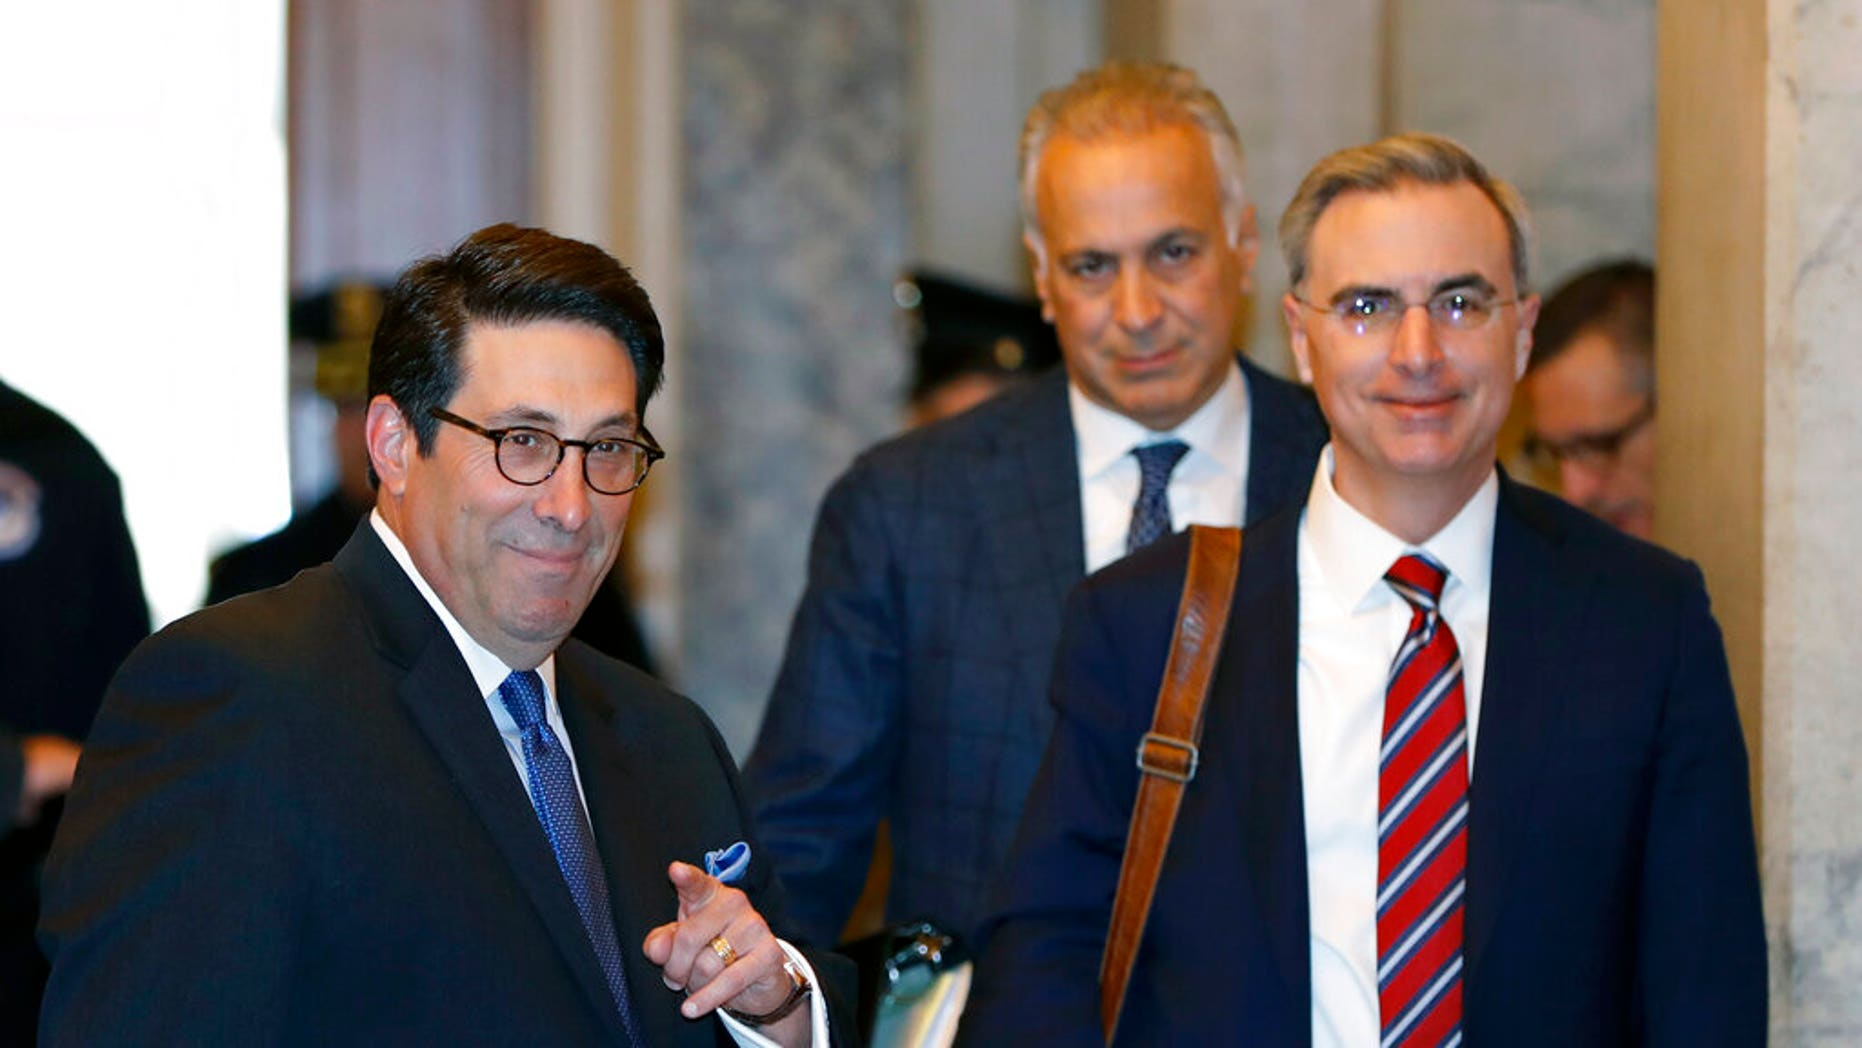 President Trump's personal attorney Jay Sekulow, left, gestures while standing with White House Counsel Pat Cipollone, right, while arriving at the Capitol in Washington. (AP Photo/Julio Cortez)